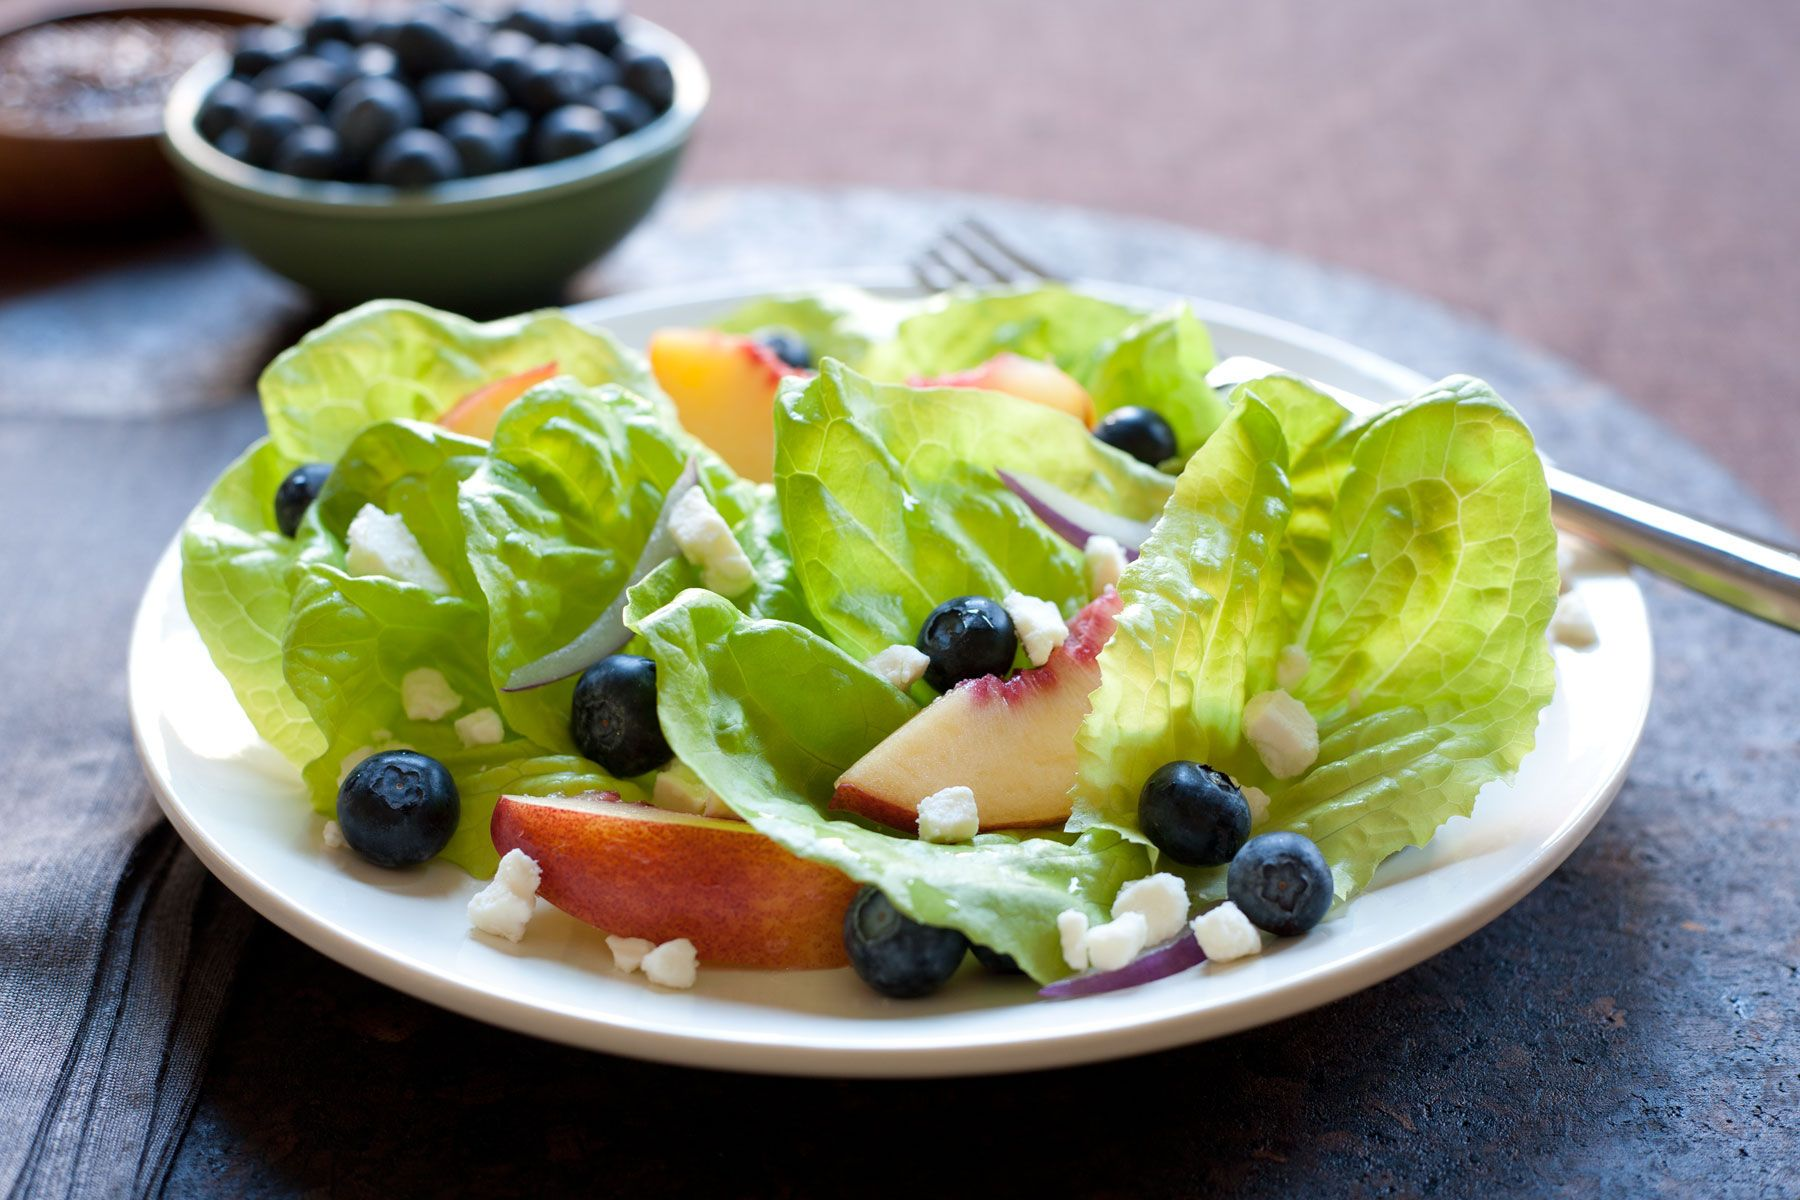 Blueberry and nectarine salad